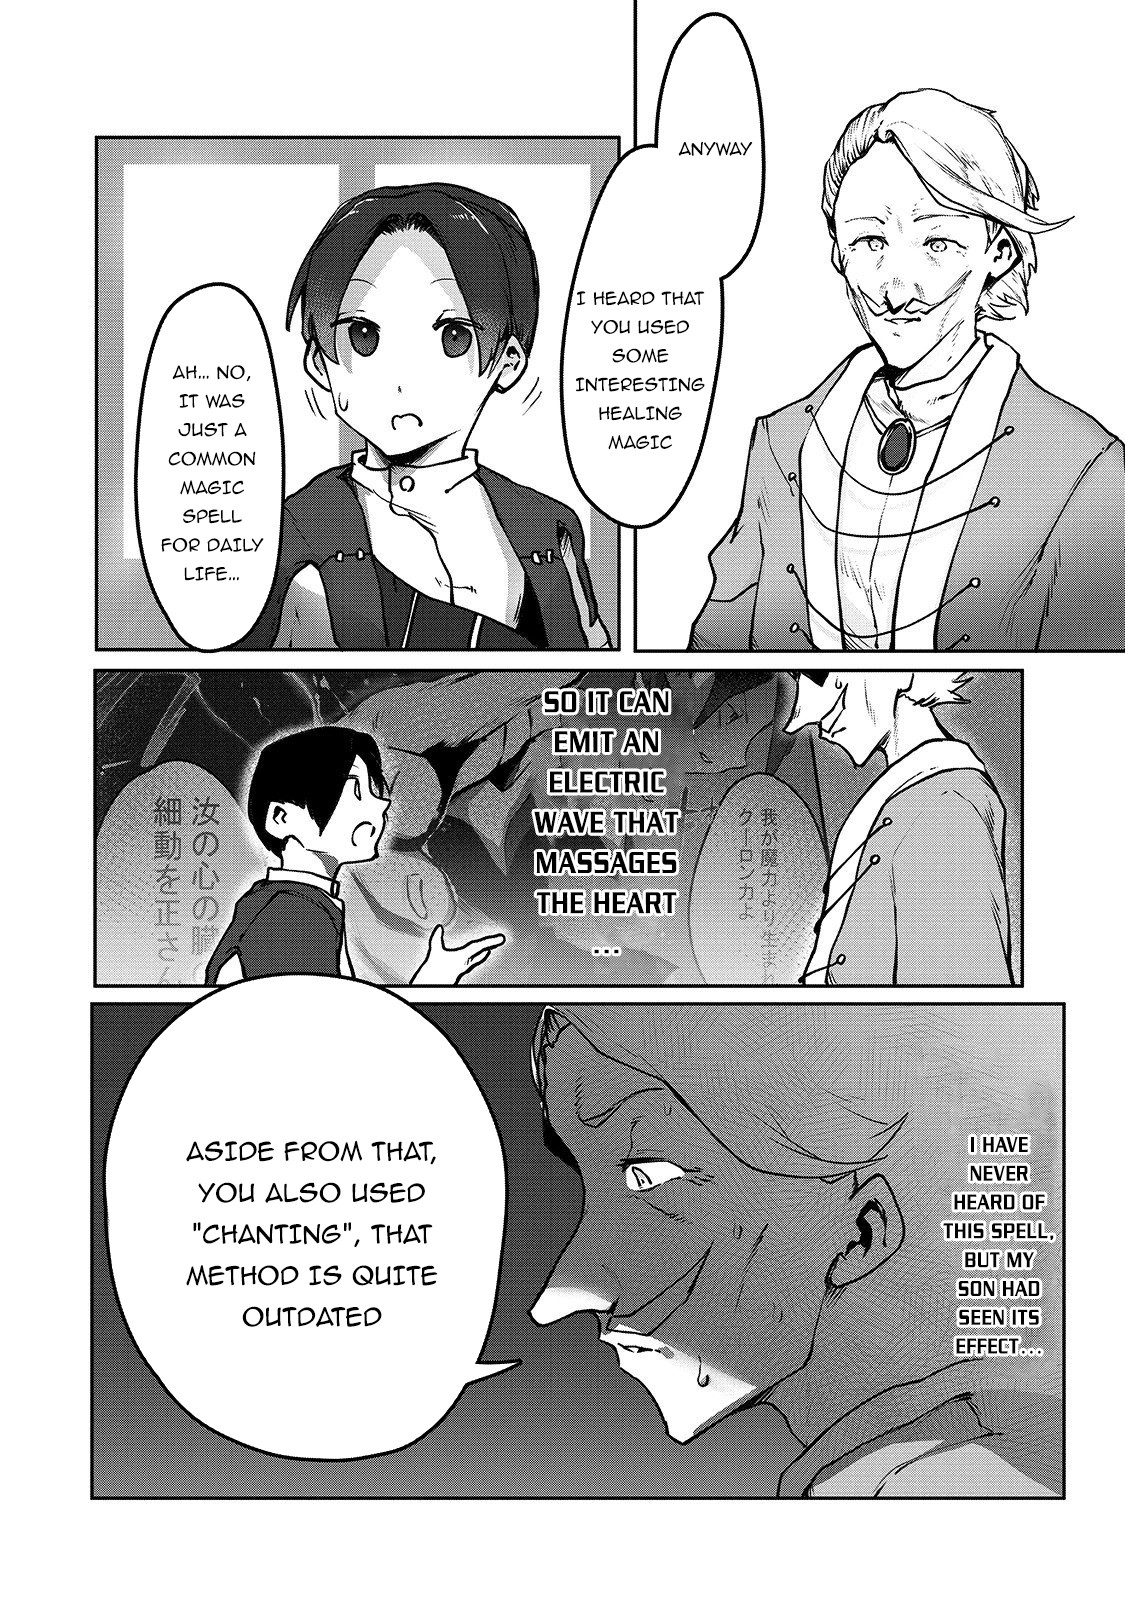 The Useless Tamer Will Turn into the Top Unconsciously by My Previous Life Knowledge - chapter 3-eng-li